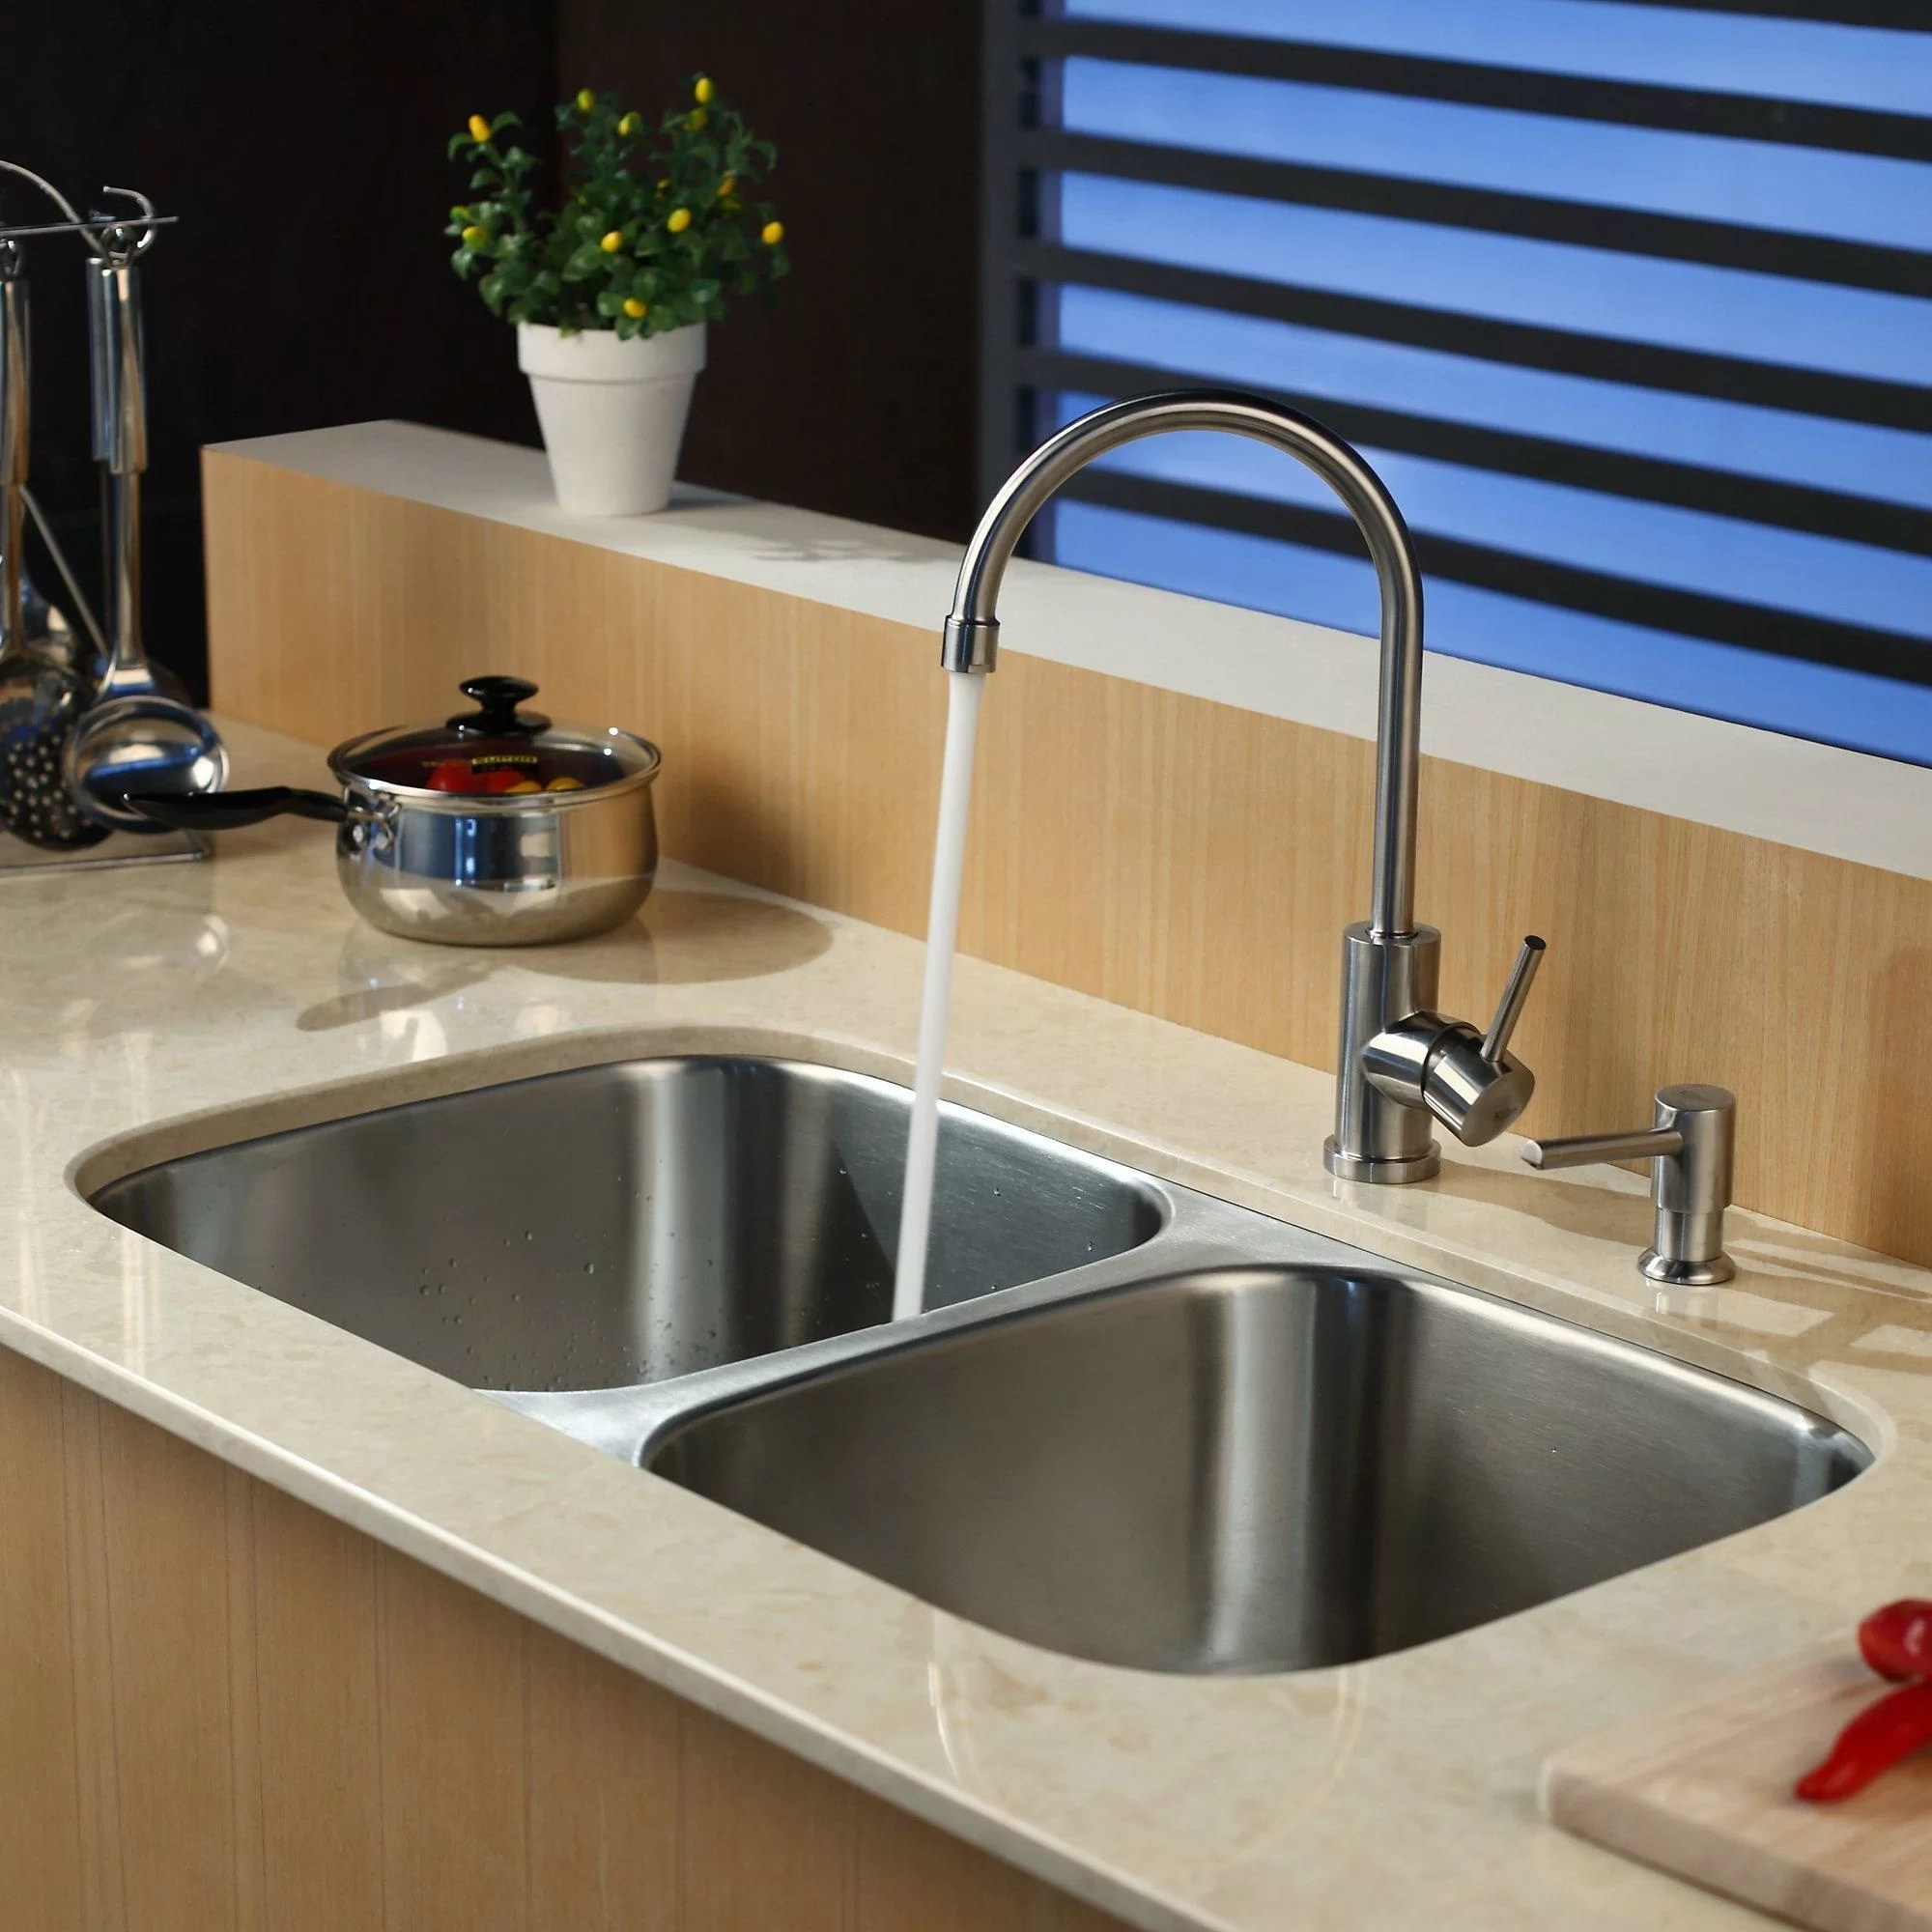 undermount double kitchen sink grohe faucet cartridge replacement kraus 32 25 quot x 18 5 contemporary bowl